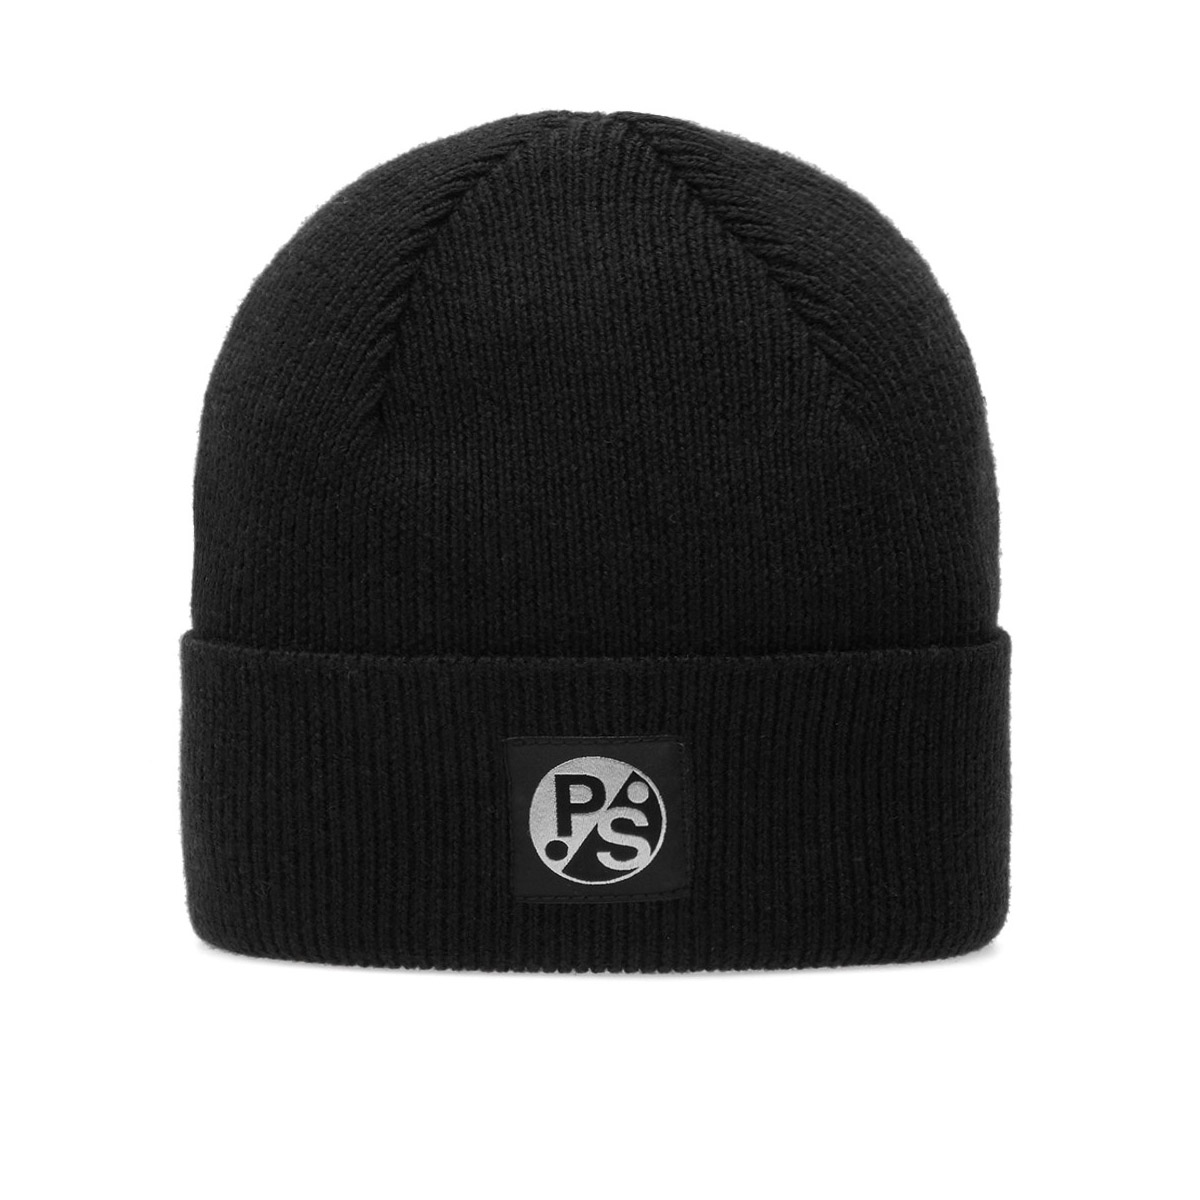 PAUL SMITH Merino Beanie in Black